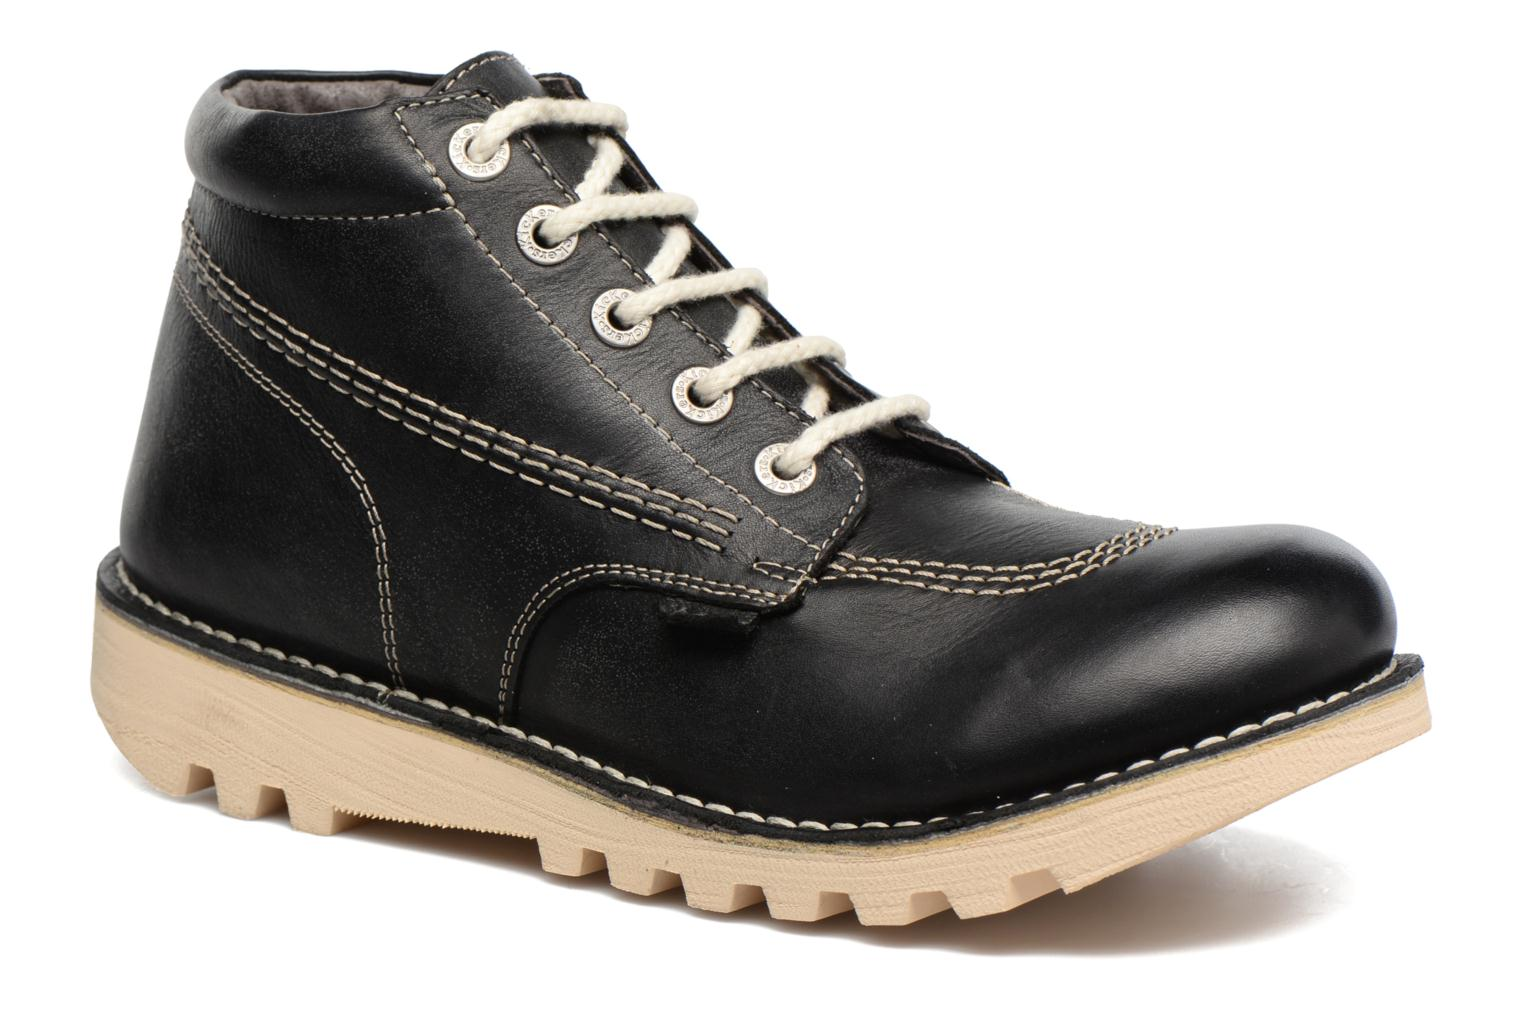 Kickers Mens Shoes Prices